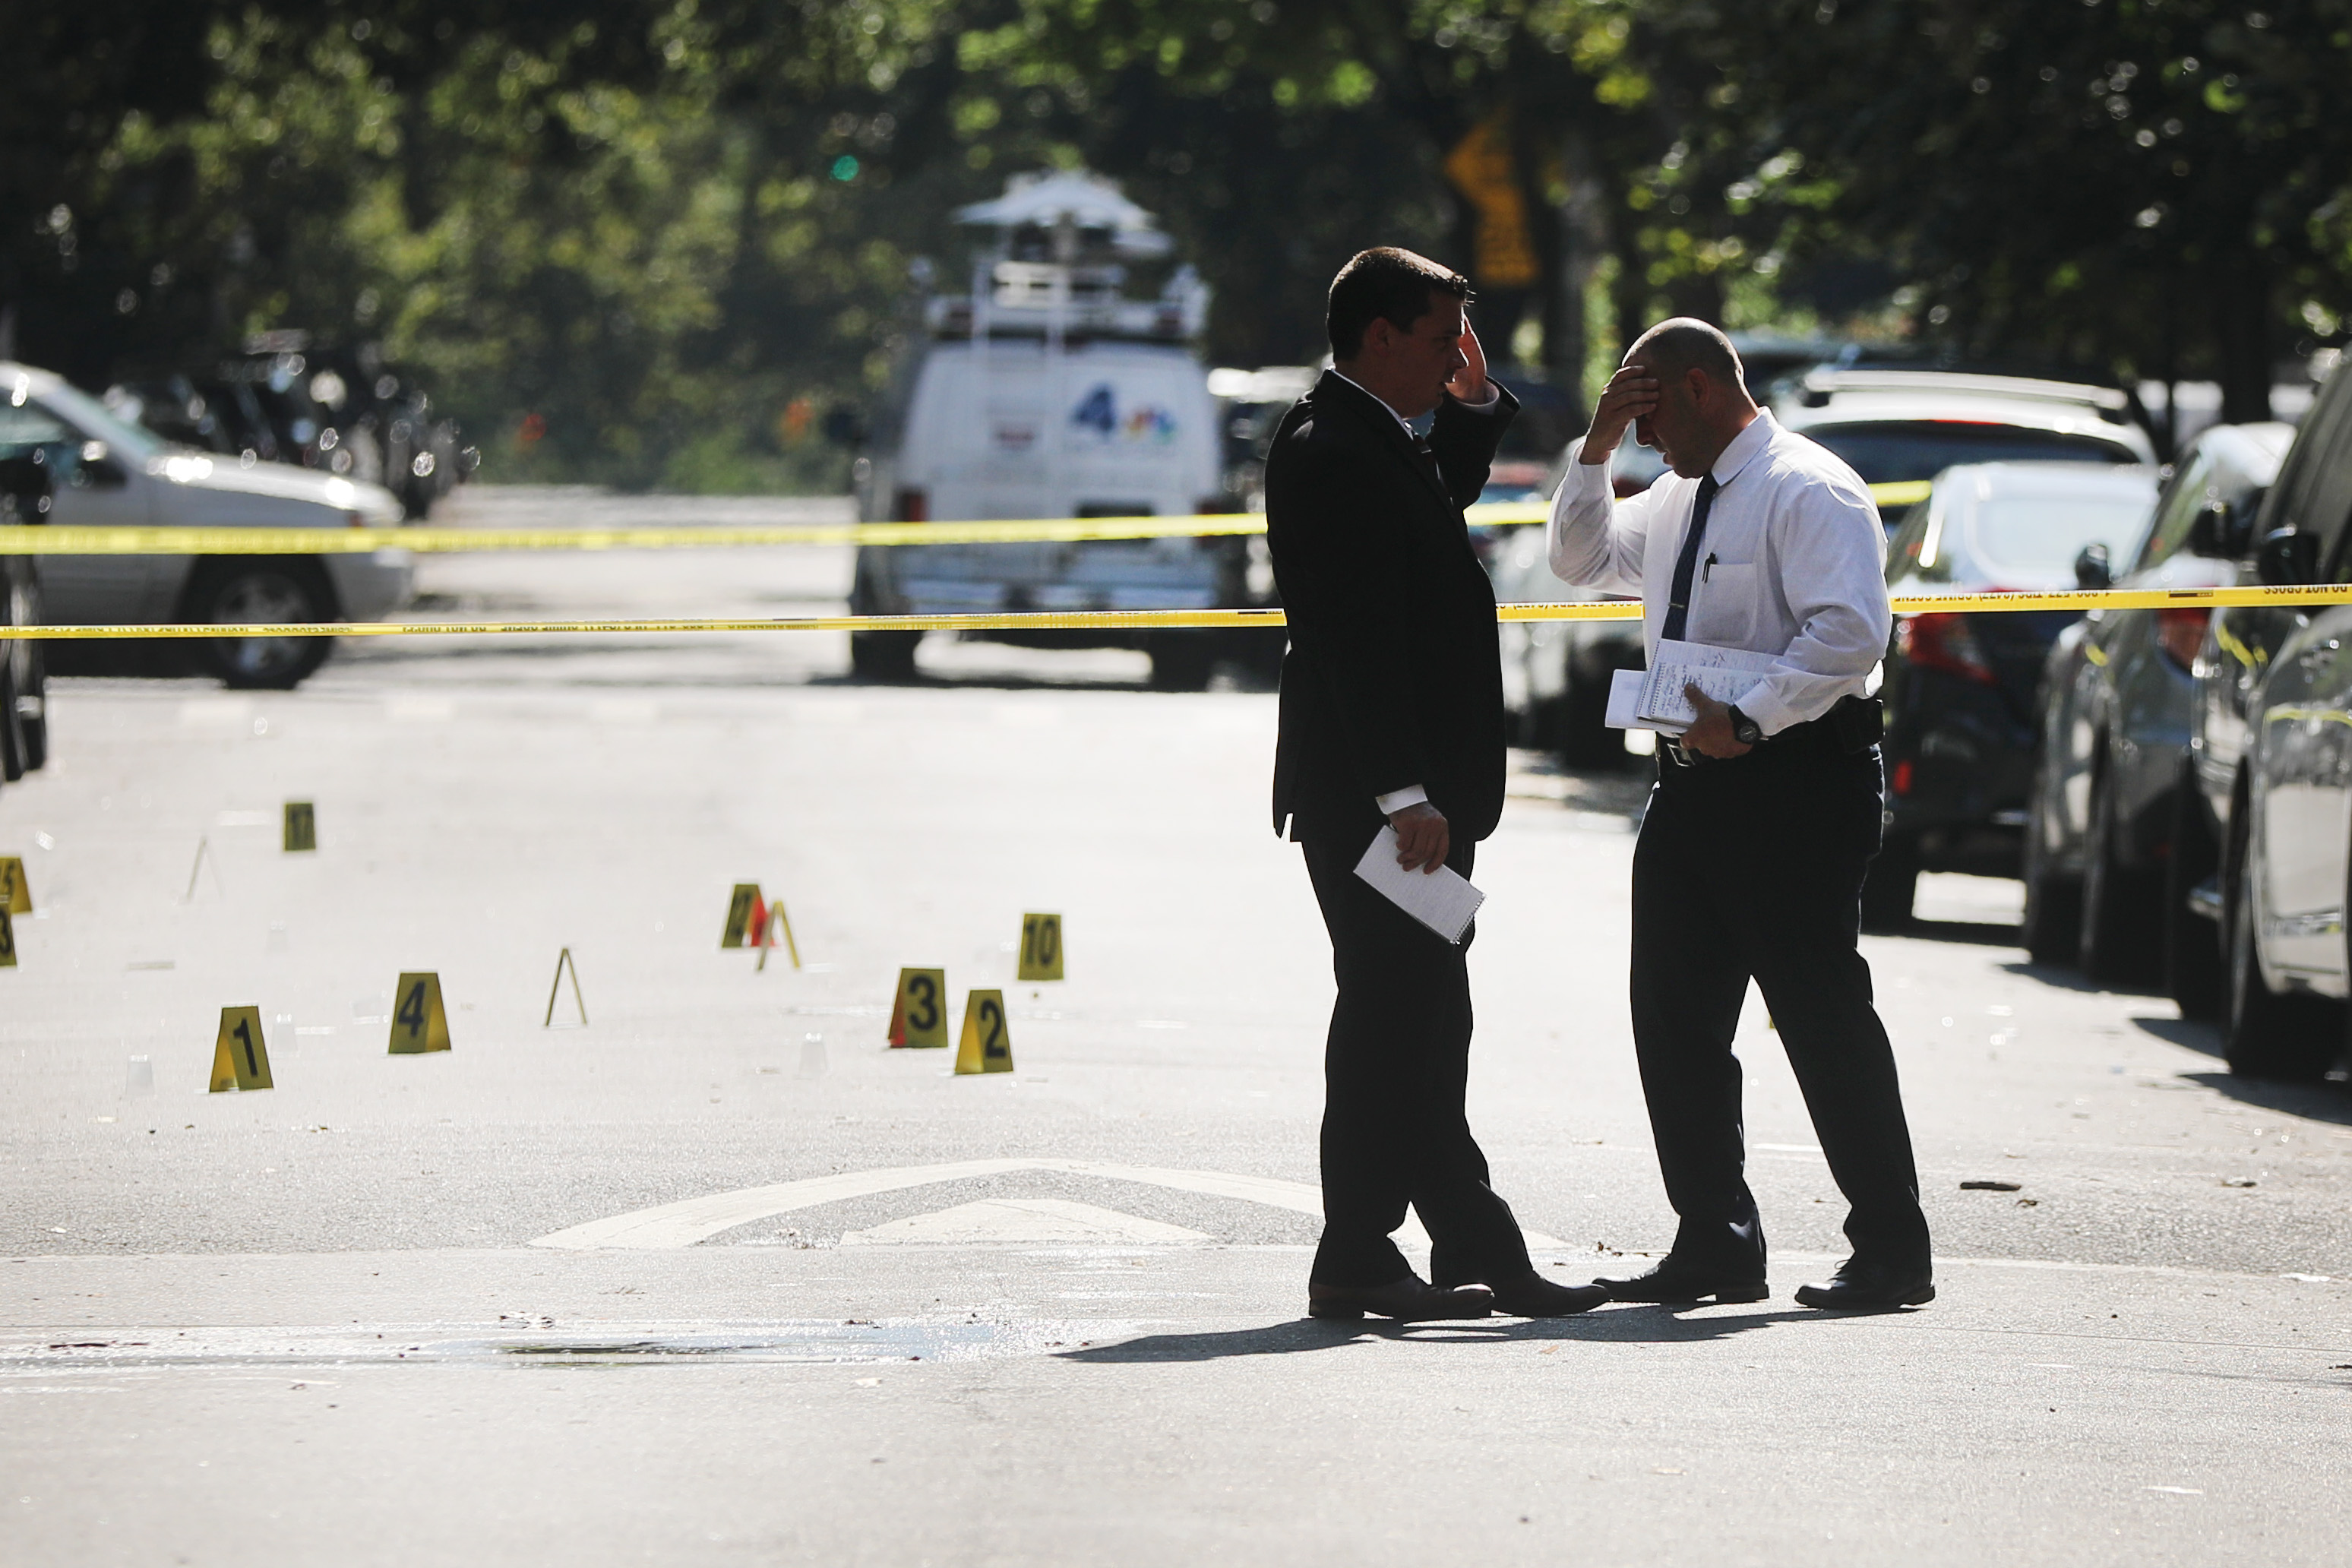 Police work at a crime scene in Brooklyn where a one year old child was shot and killed on July 13, 2020 in New York City. The 1-year-old boy was shot near a playground during a Sunday picnic when gunfire erupted. Two adults were wounded in the evening shooting. New York City has witnessed a surge in gun violence over the past month with 9 people killed, including children, and 41 others wounded on the Fourth of July weekend alone. The gun violence is occurring against the backdrop of a nationwide movement to consider defunding police departments. (Photo by Spencer Platt/Getty Images)